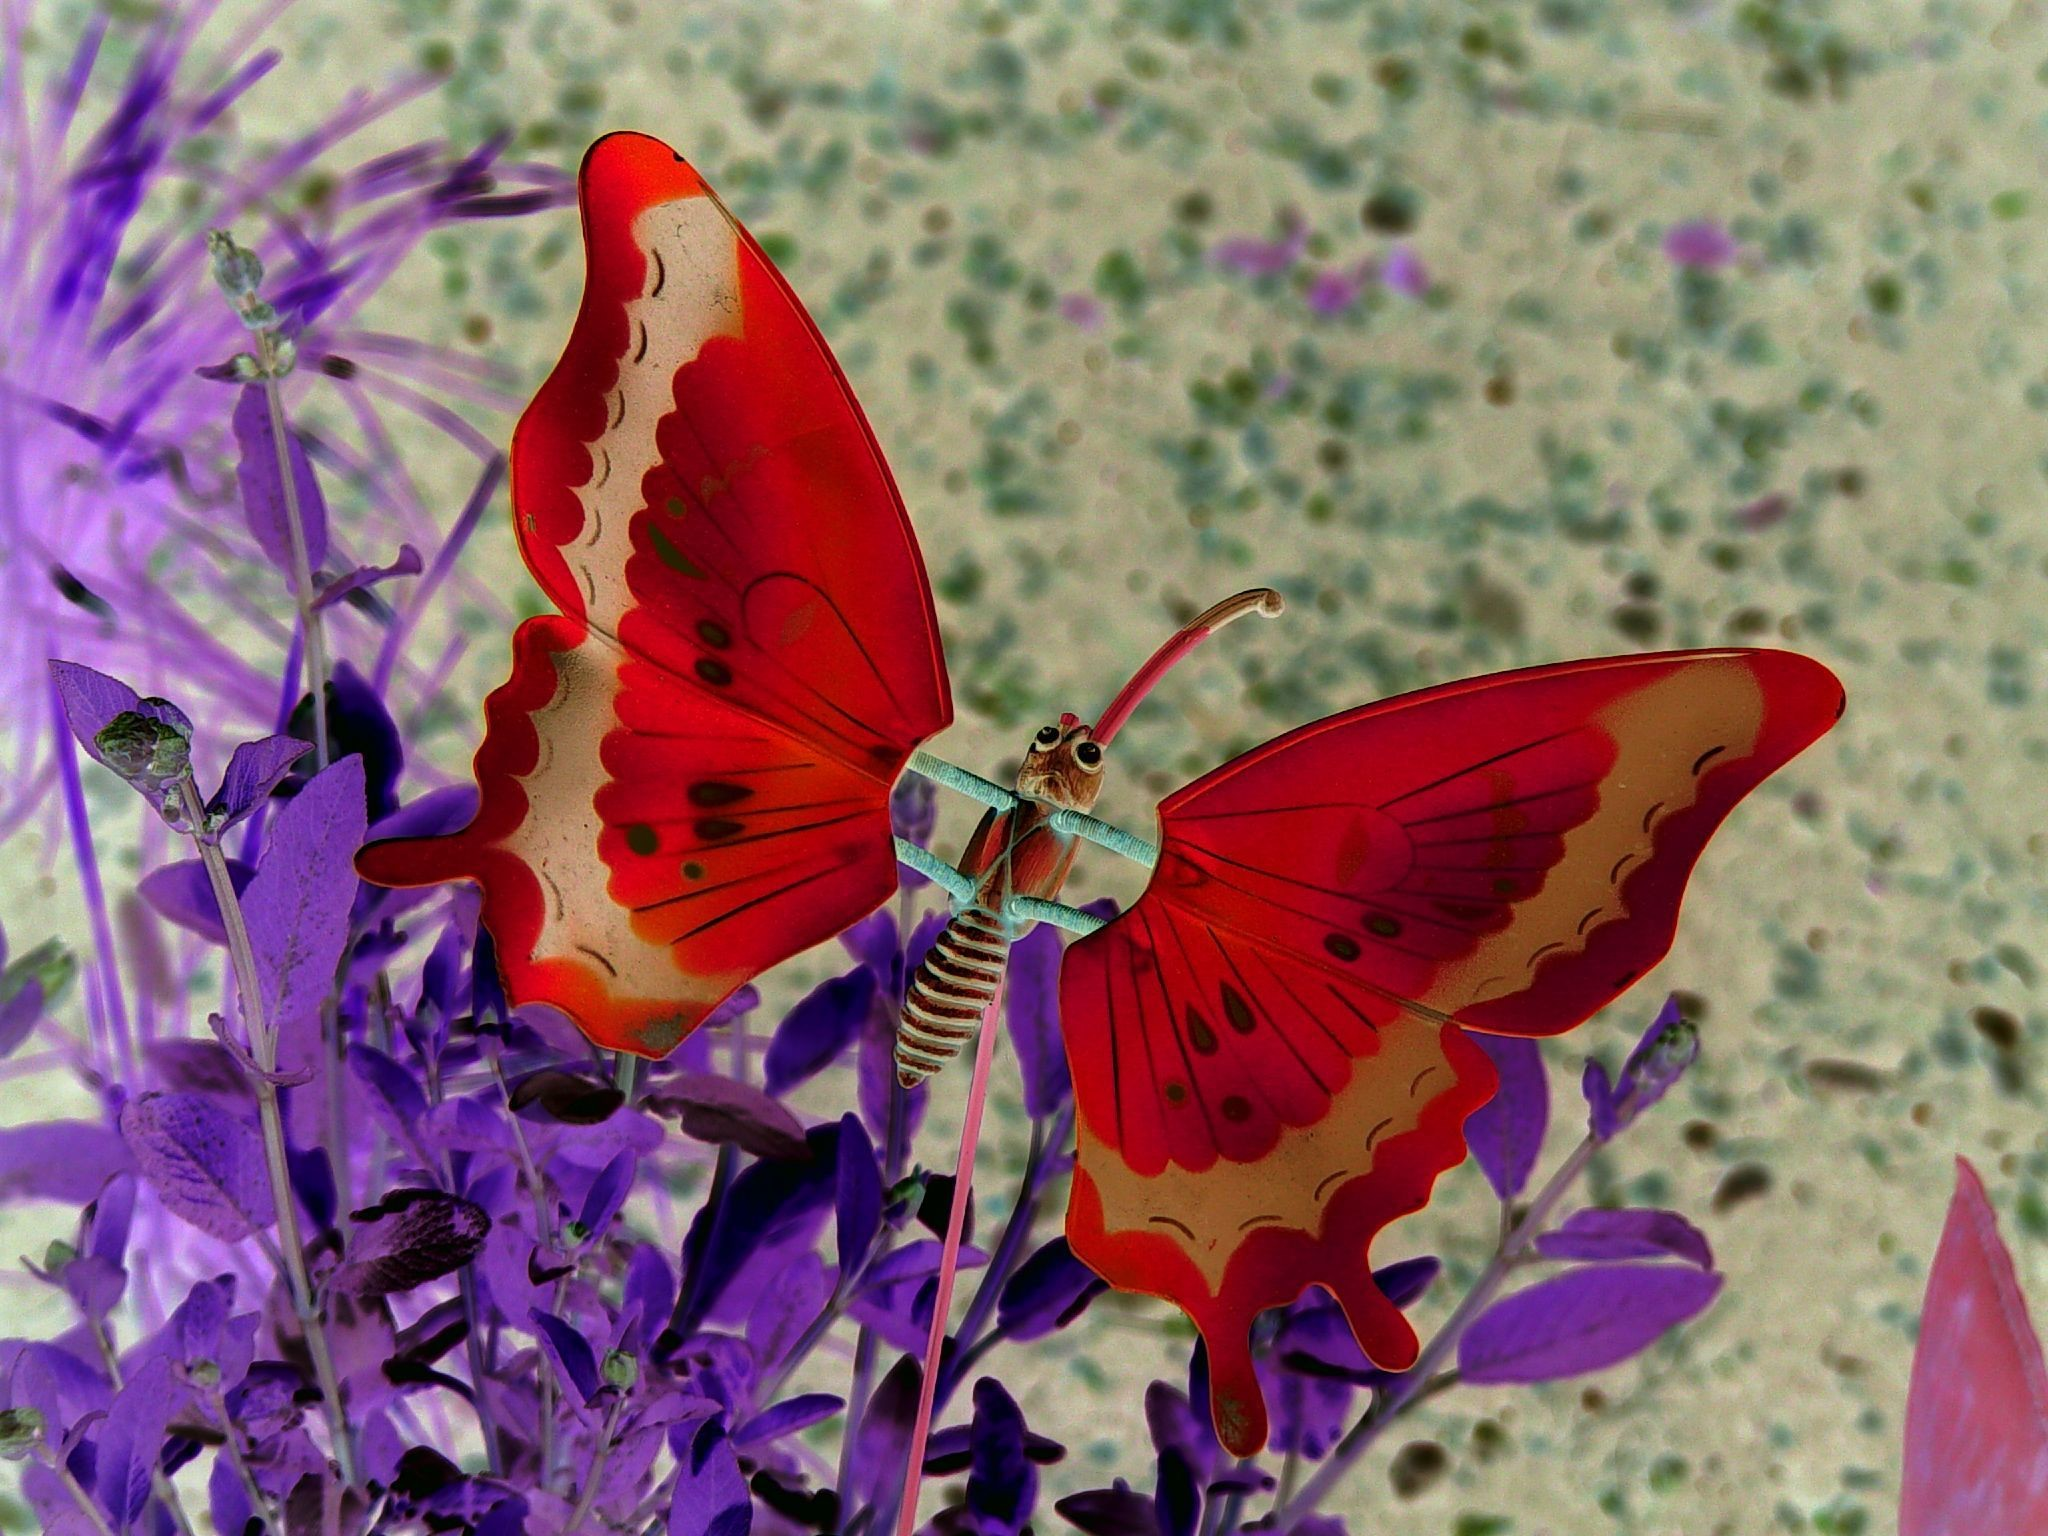 Res: 2048x1536, rare butterfly photos   rare red butterfly – wallpaper – 2048 x 1536  Wallpaper